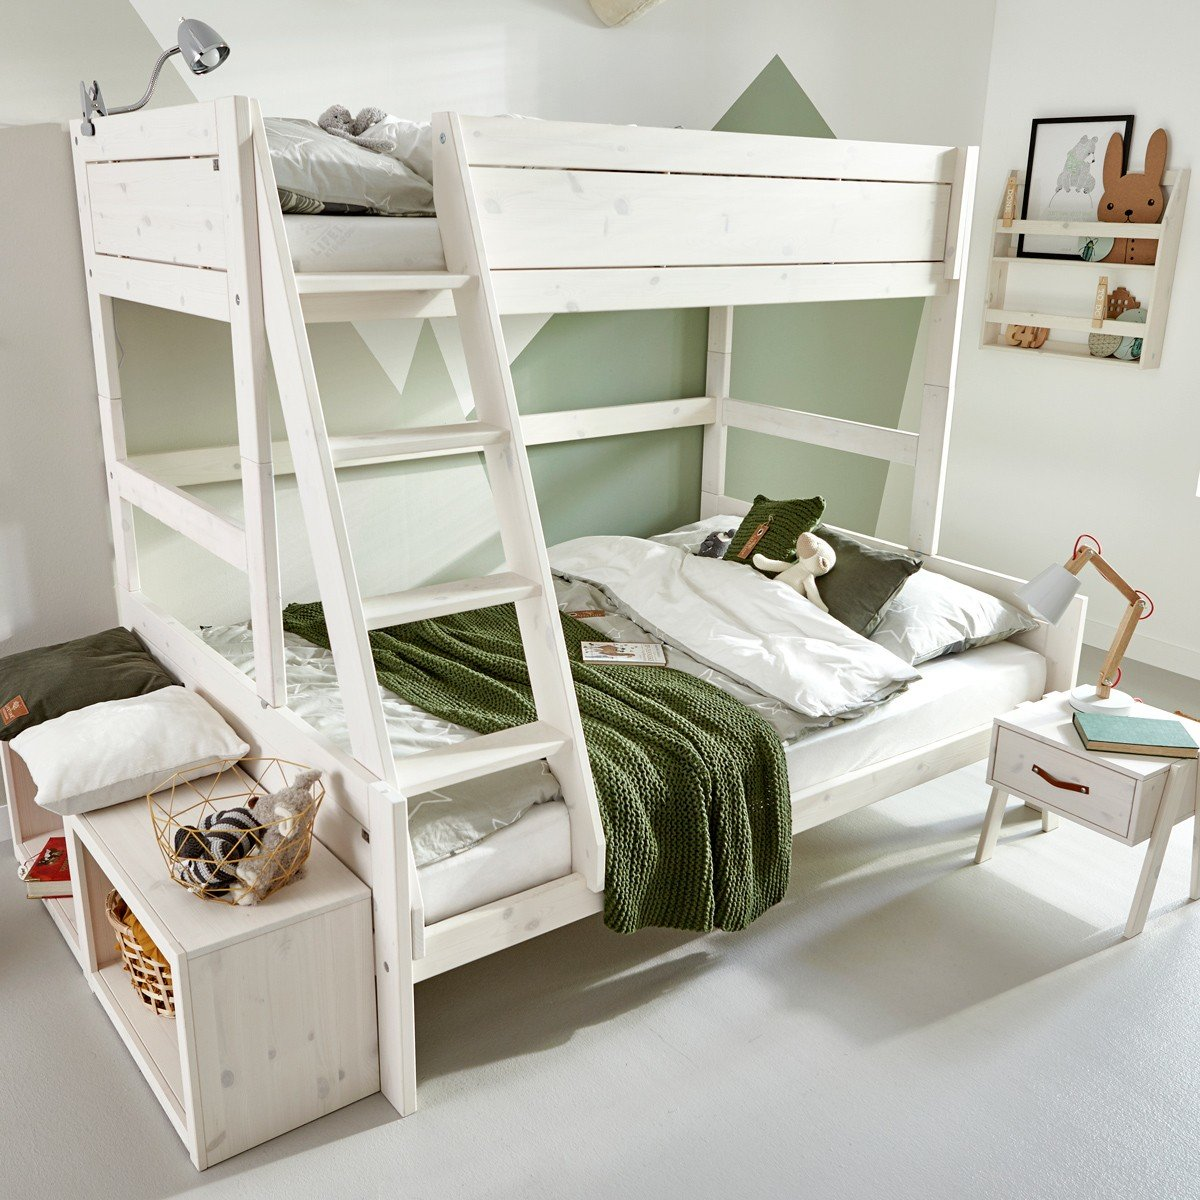 Lifetime Etagenbett Family Bed B 140 Cm Im Wallenfels Onlineshop